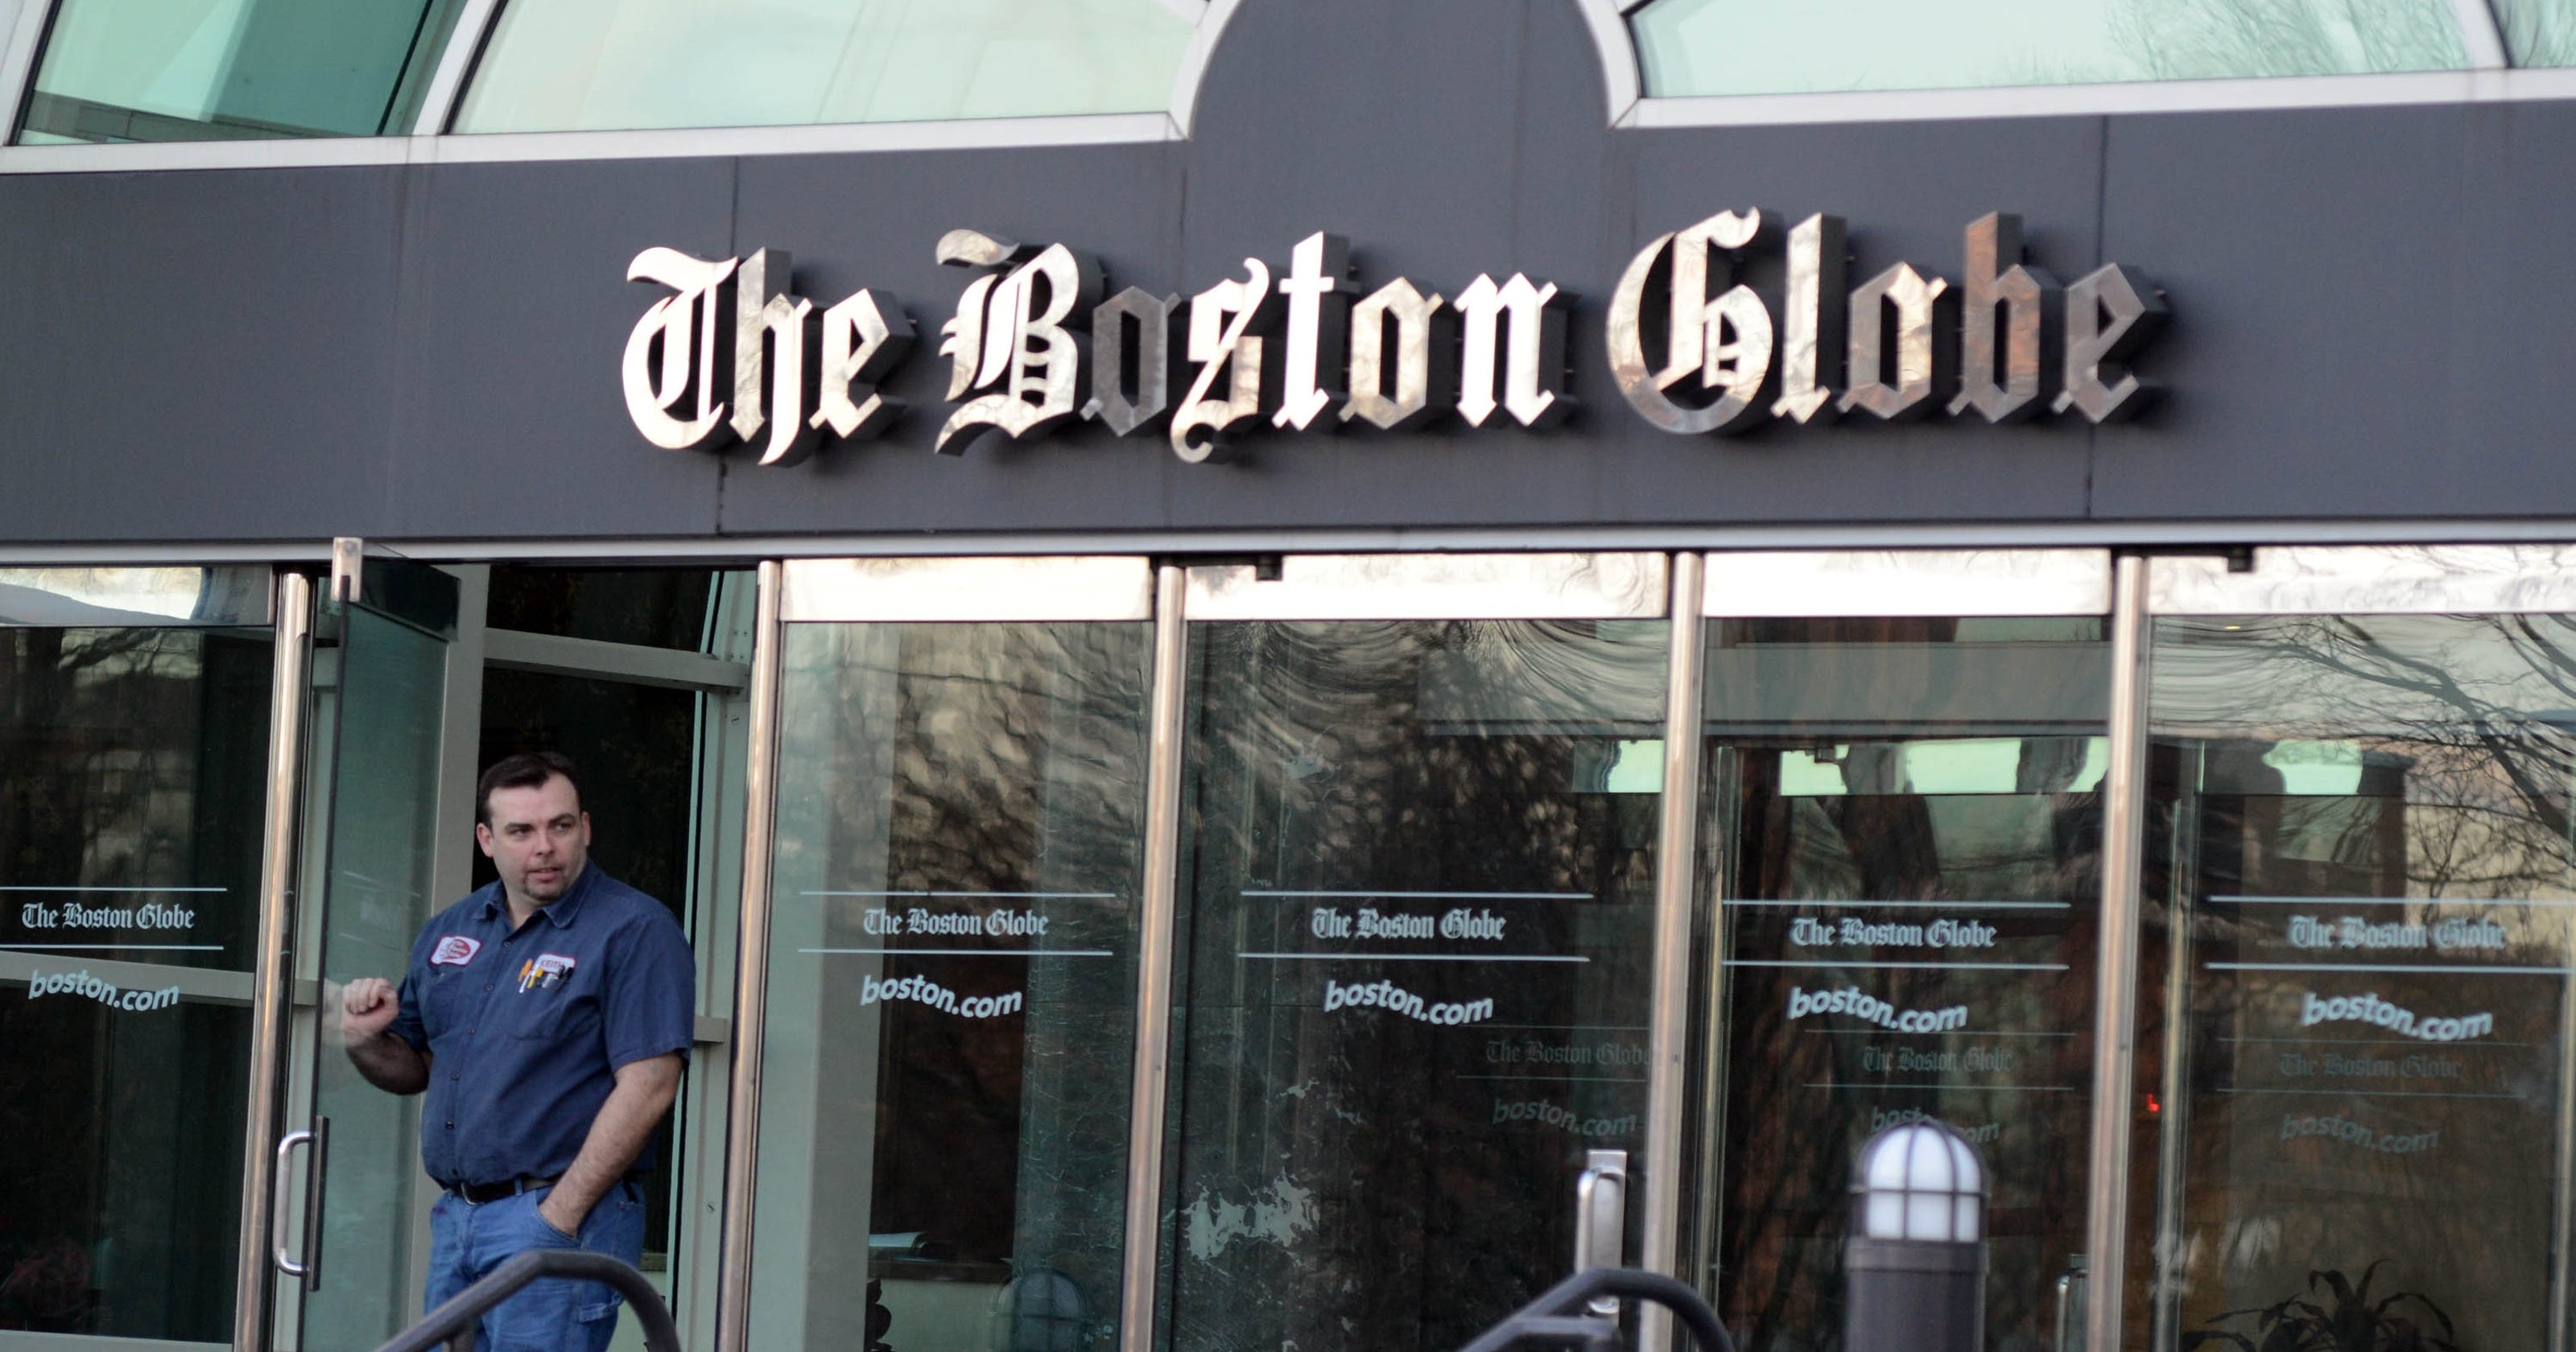 Boston Globe hit with bomb threat after publishing anti-Trump editorial